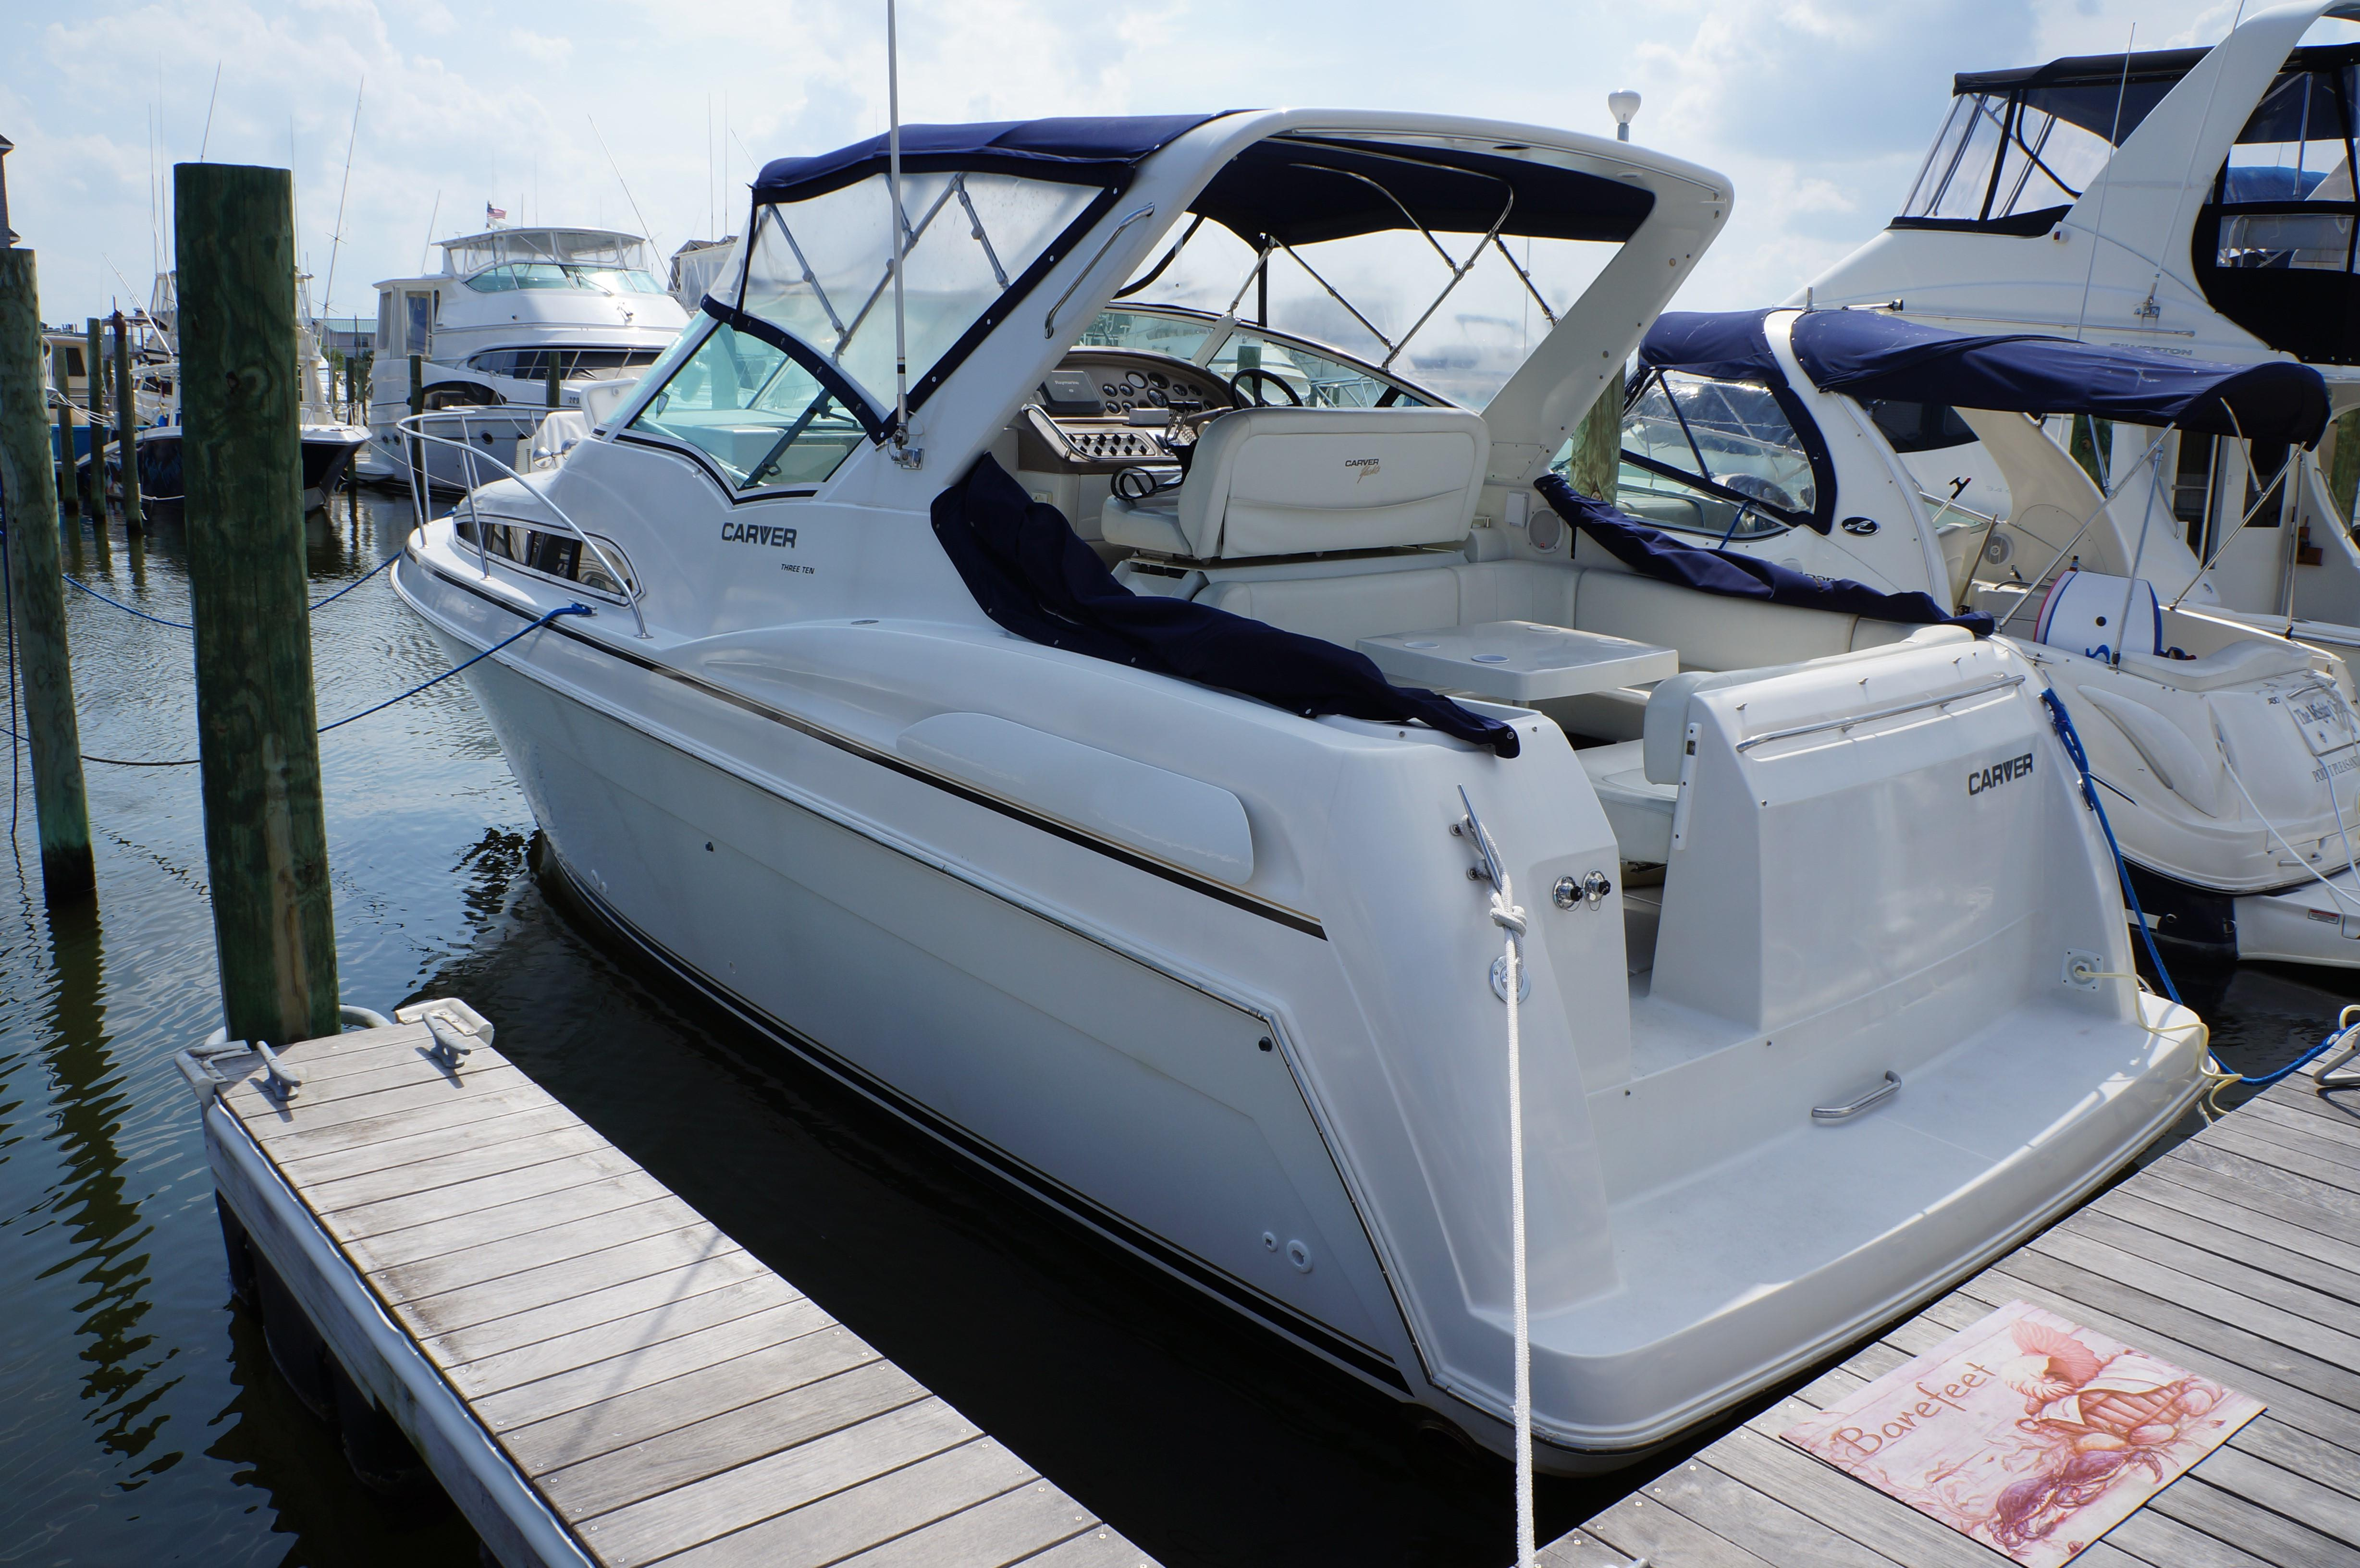 1997 Carver 310 Mid-Cabin w 2 STRM, Andover New Jersey - boats.com on